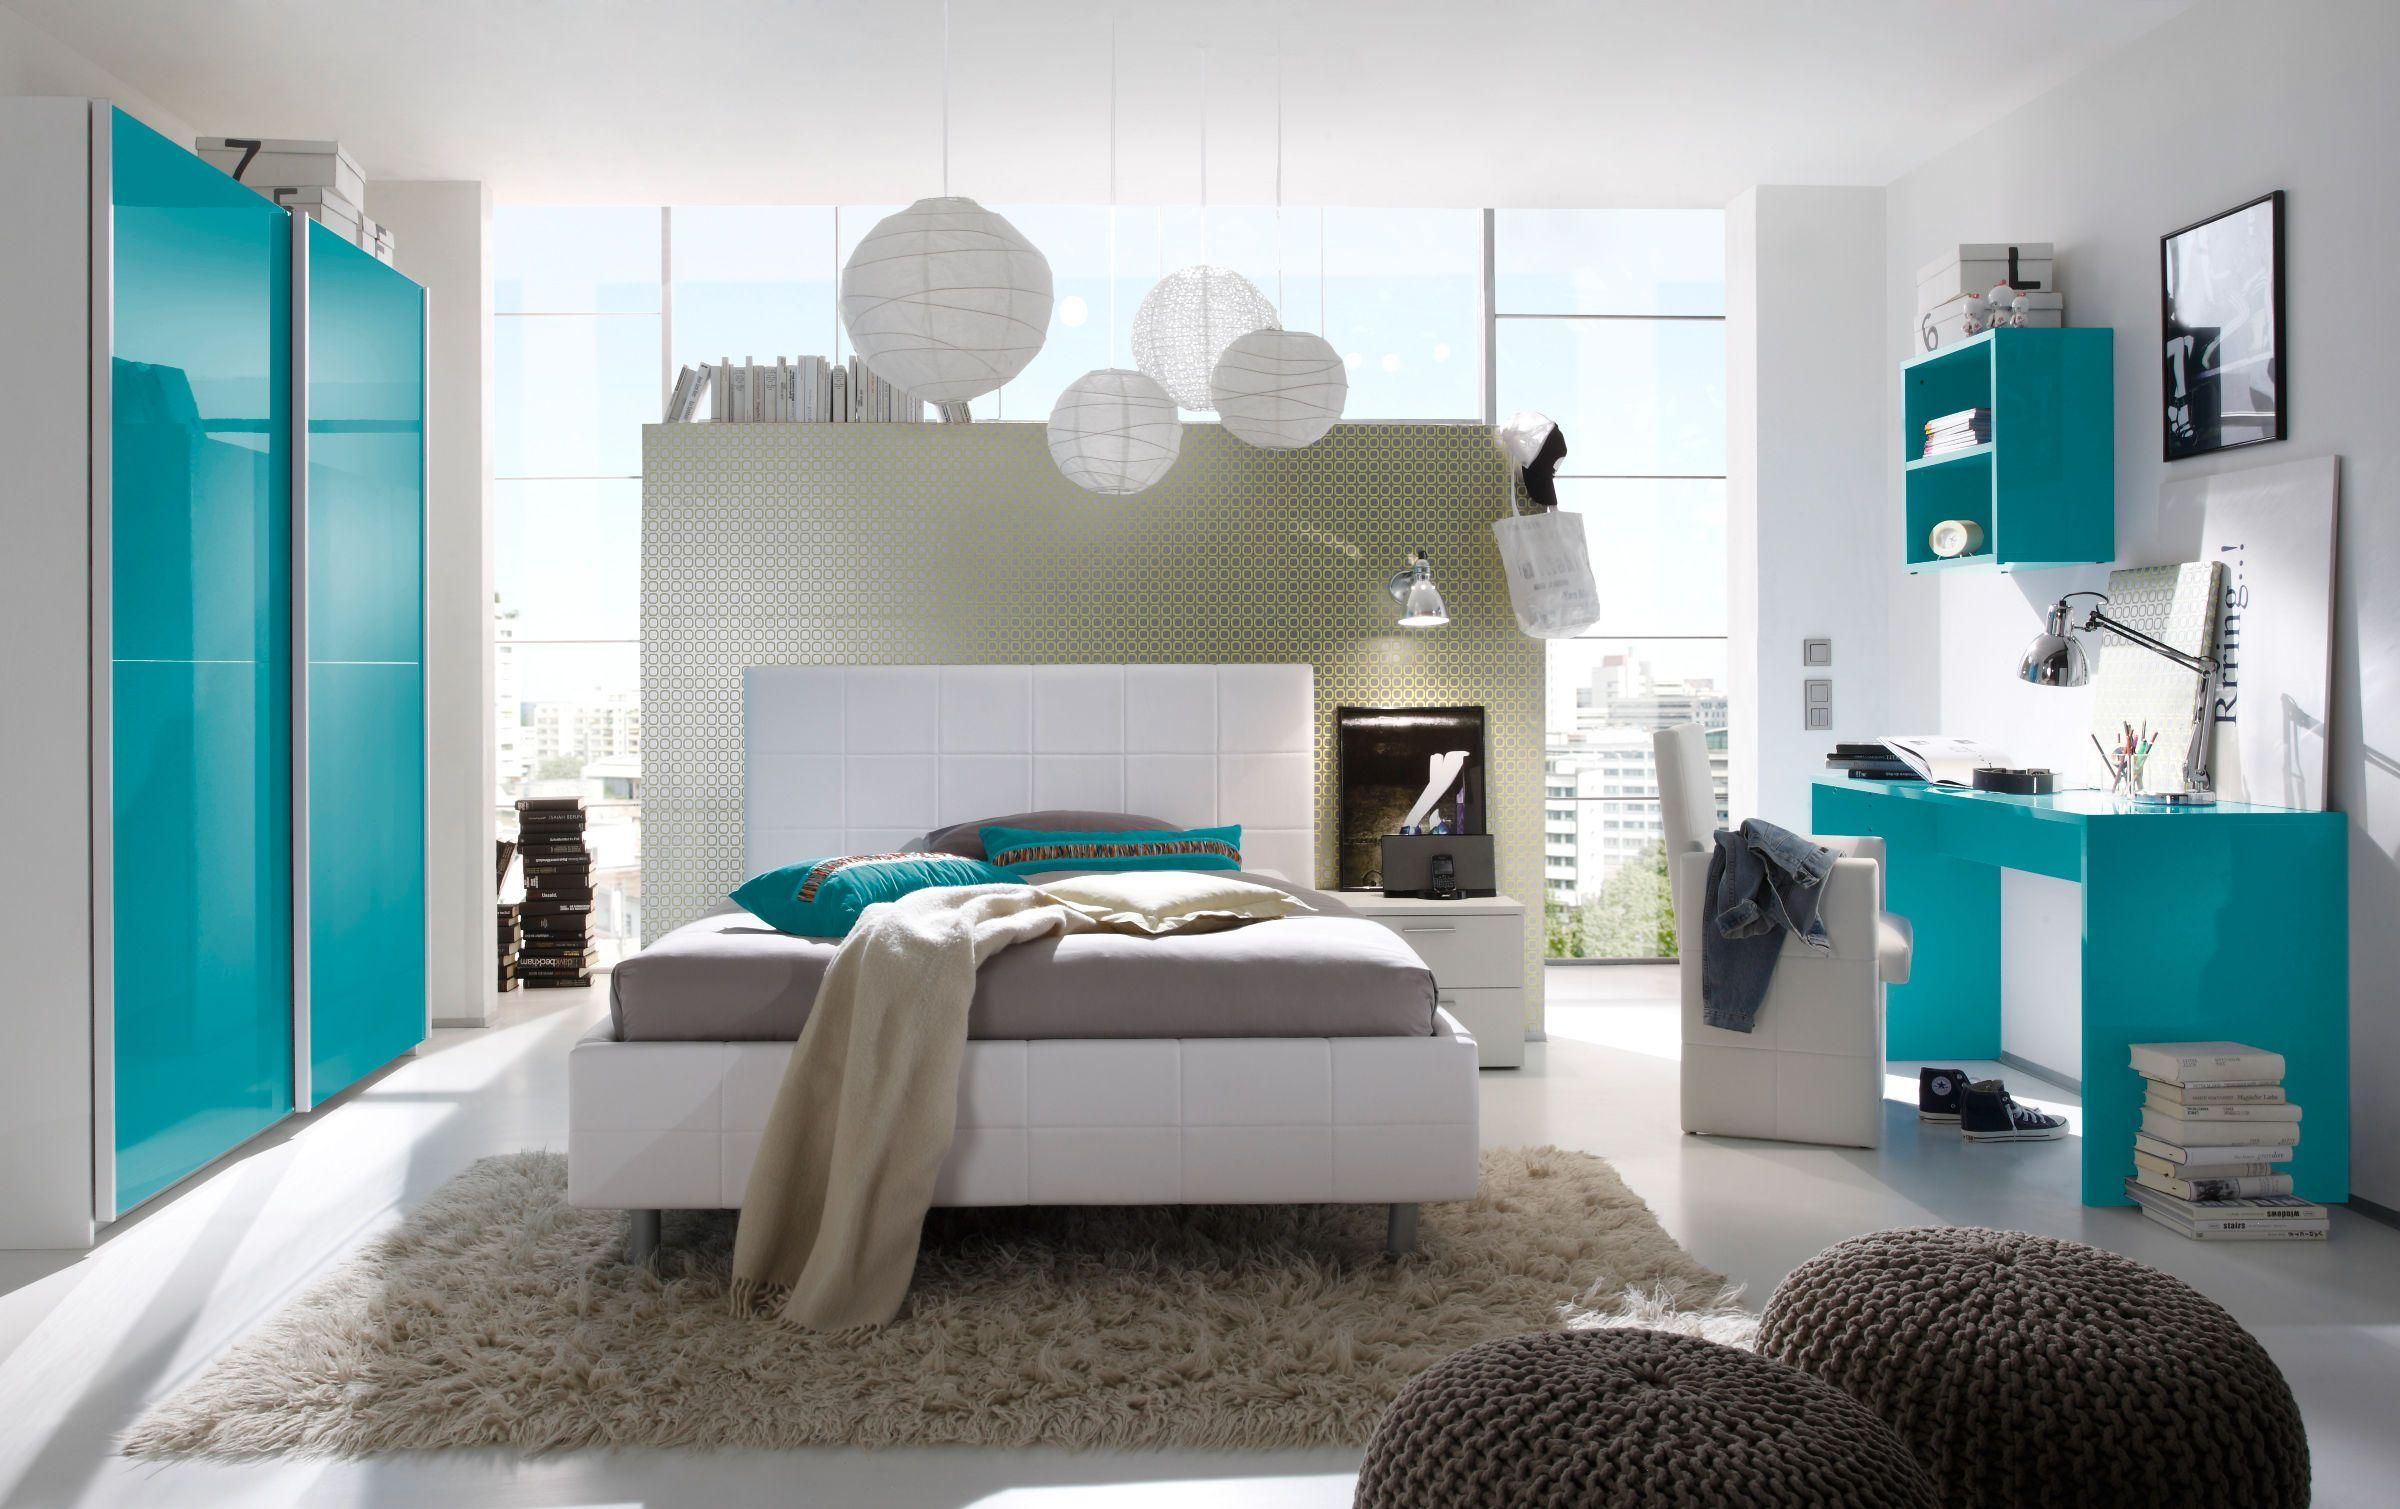 Awesome Deko Ideen Schlafzimmer T?rkis that you must know